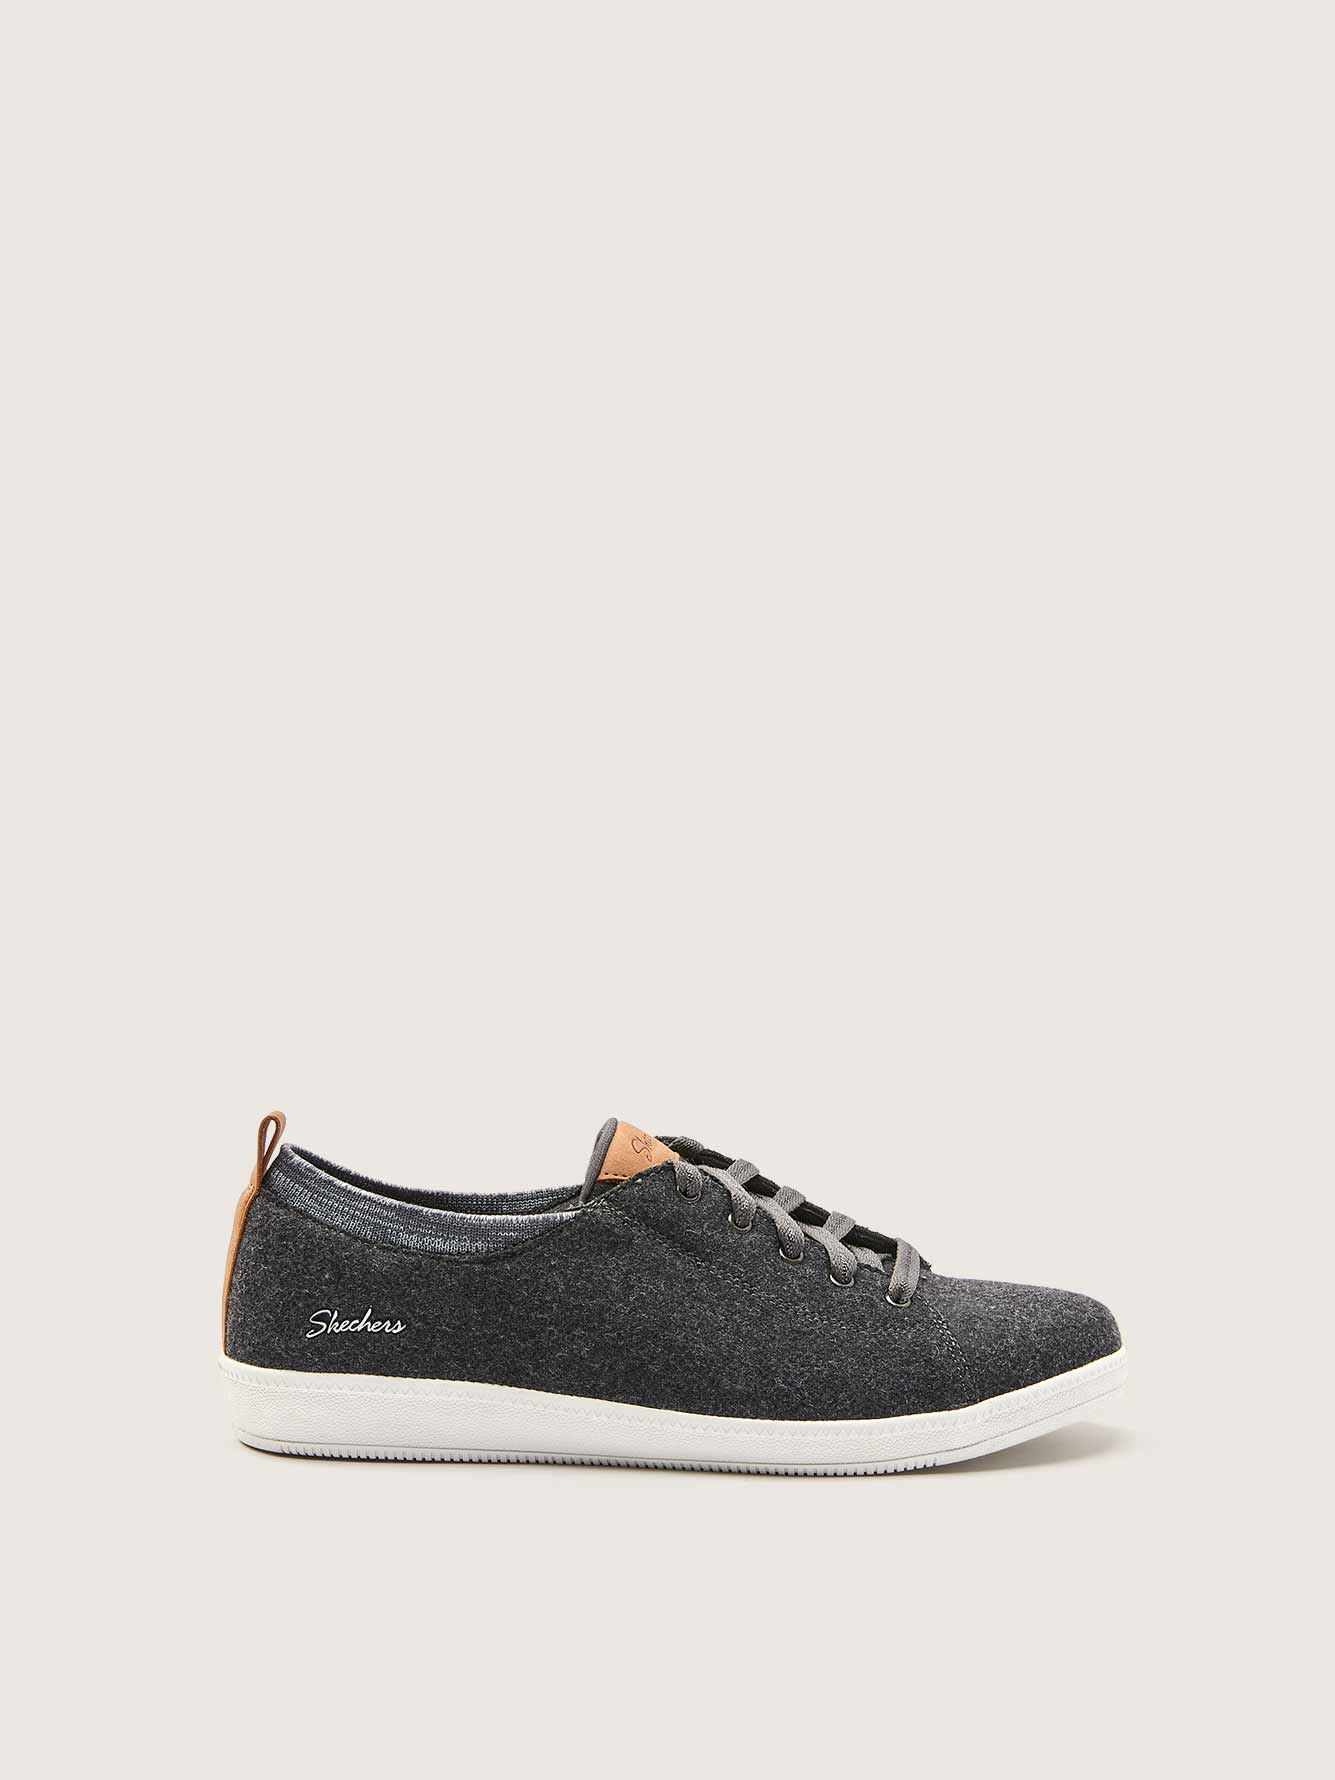 Wide Width Slip-On Madison Sneaker - Skechers